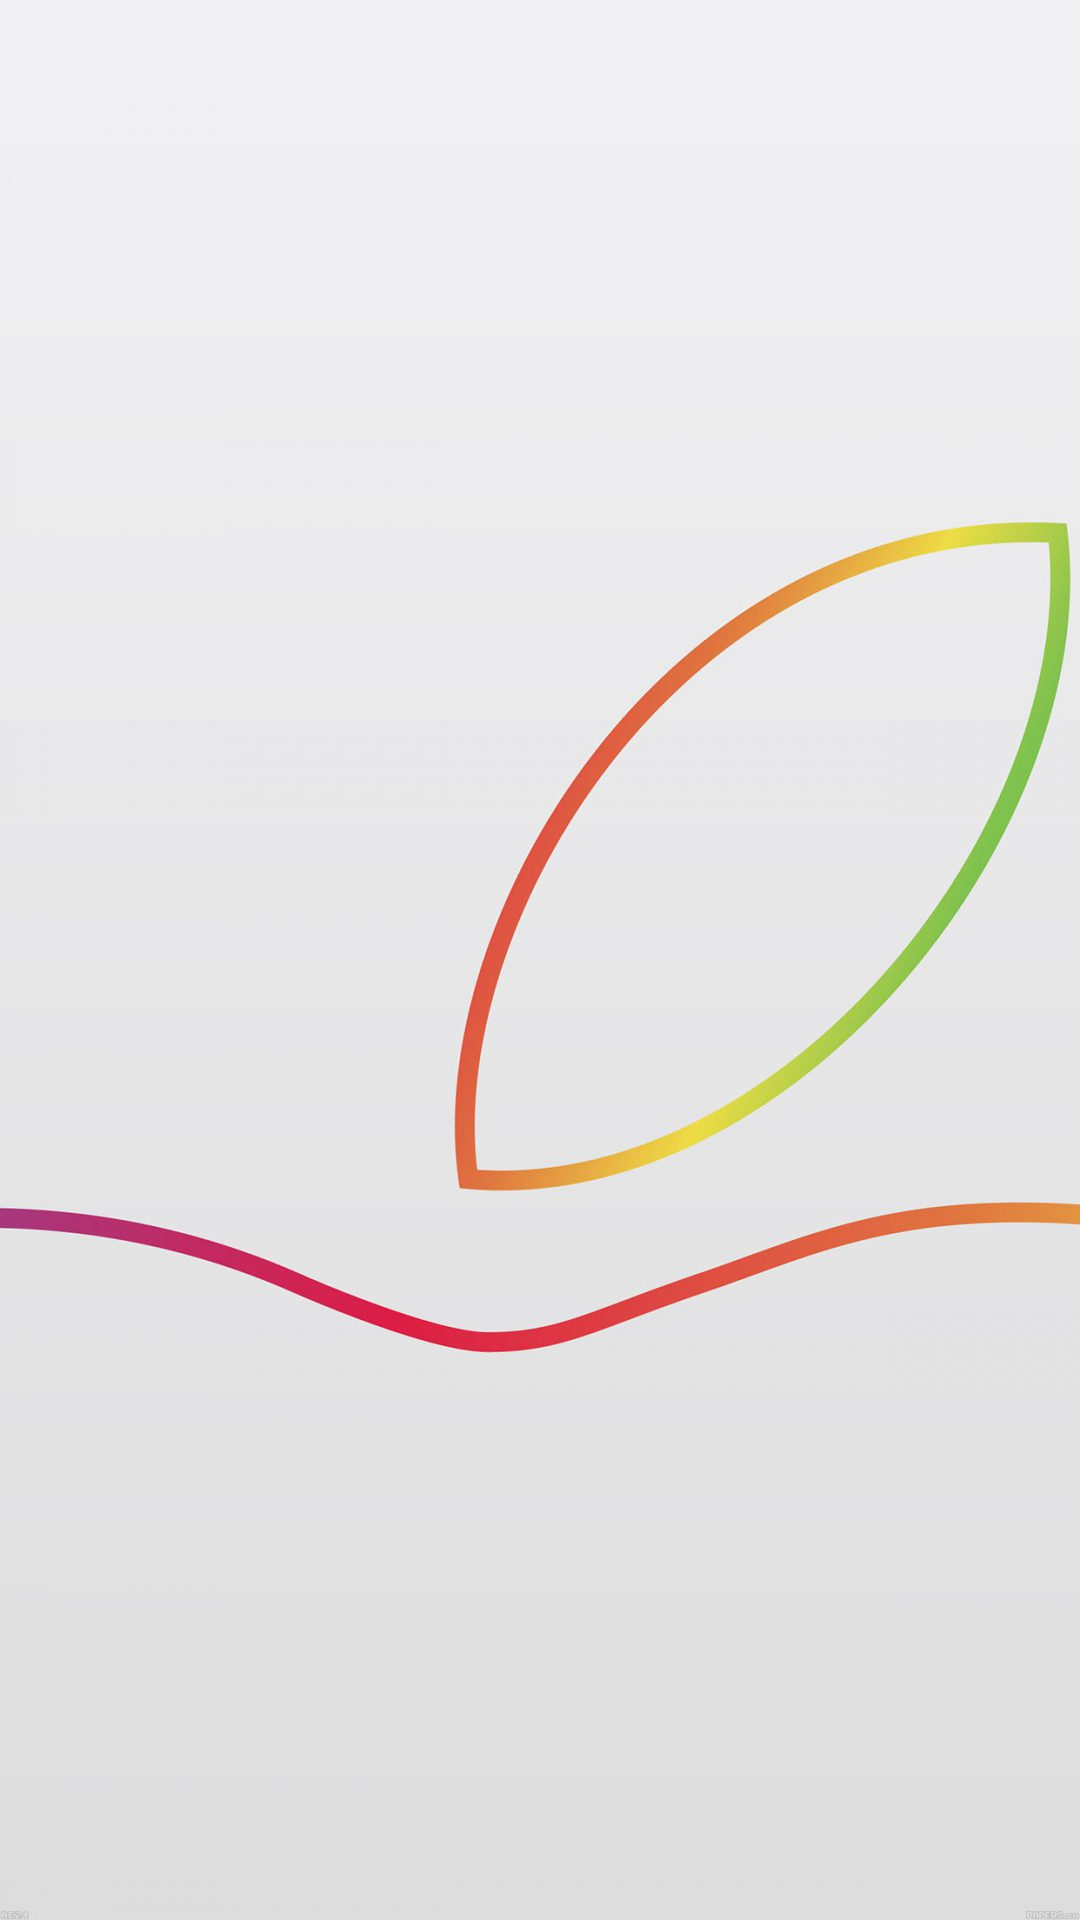 Apple Event 2014 Oct 16 Its Been Way Too Long